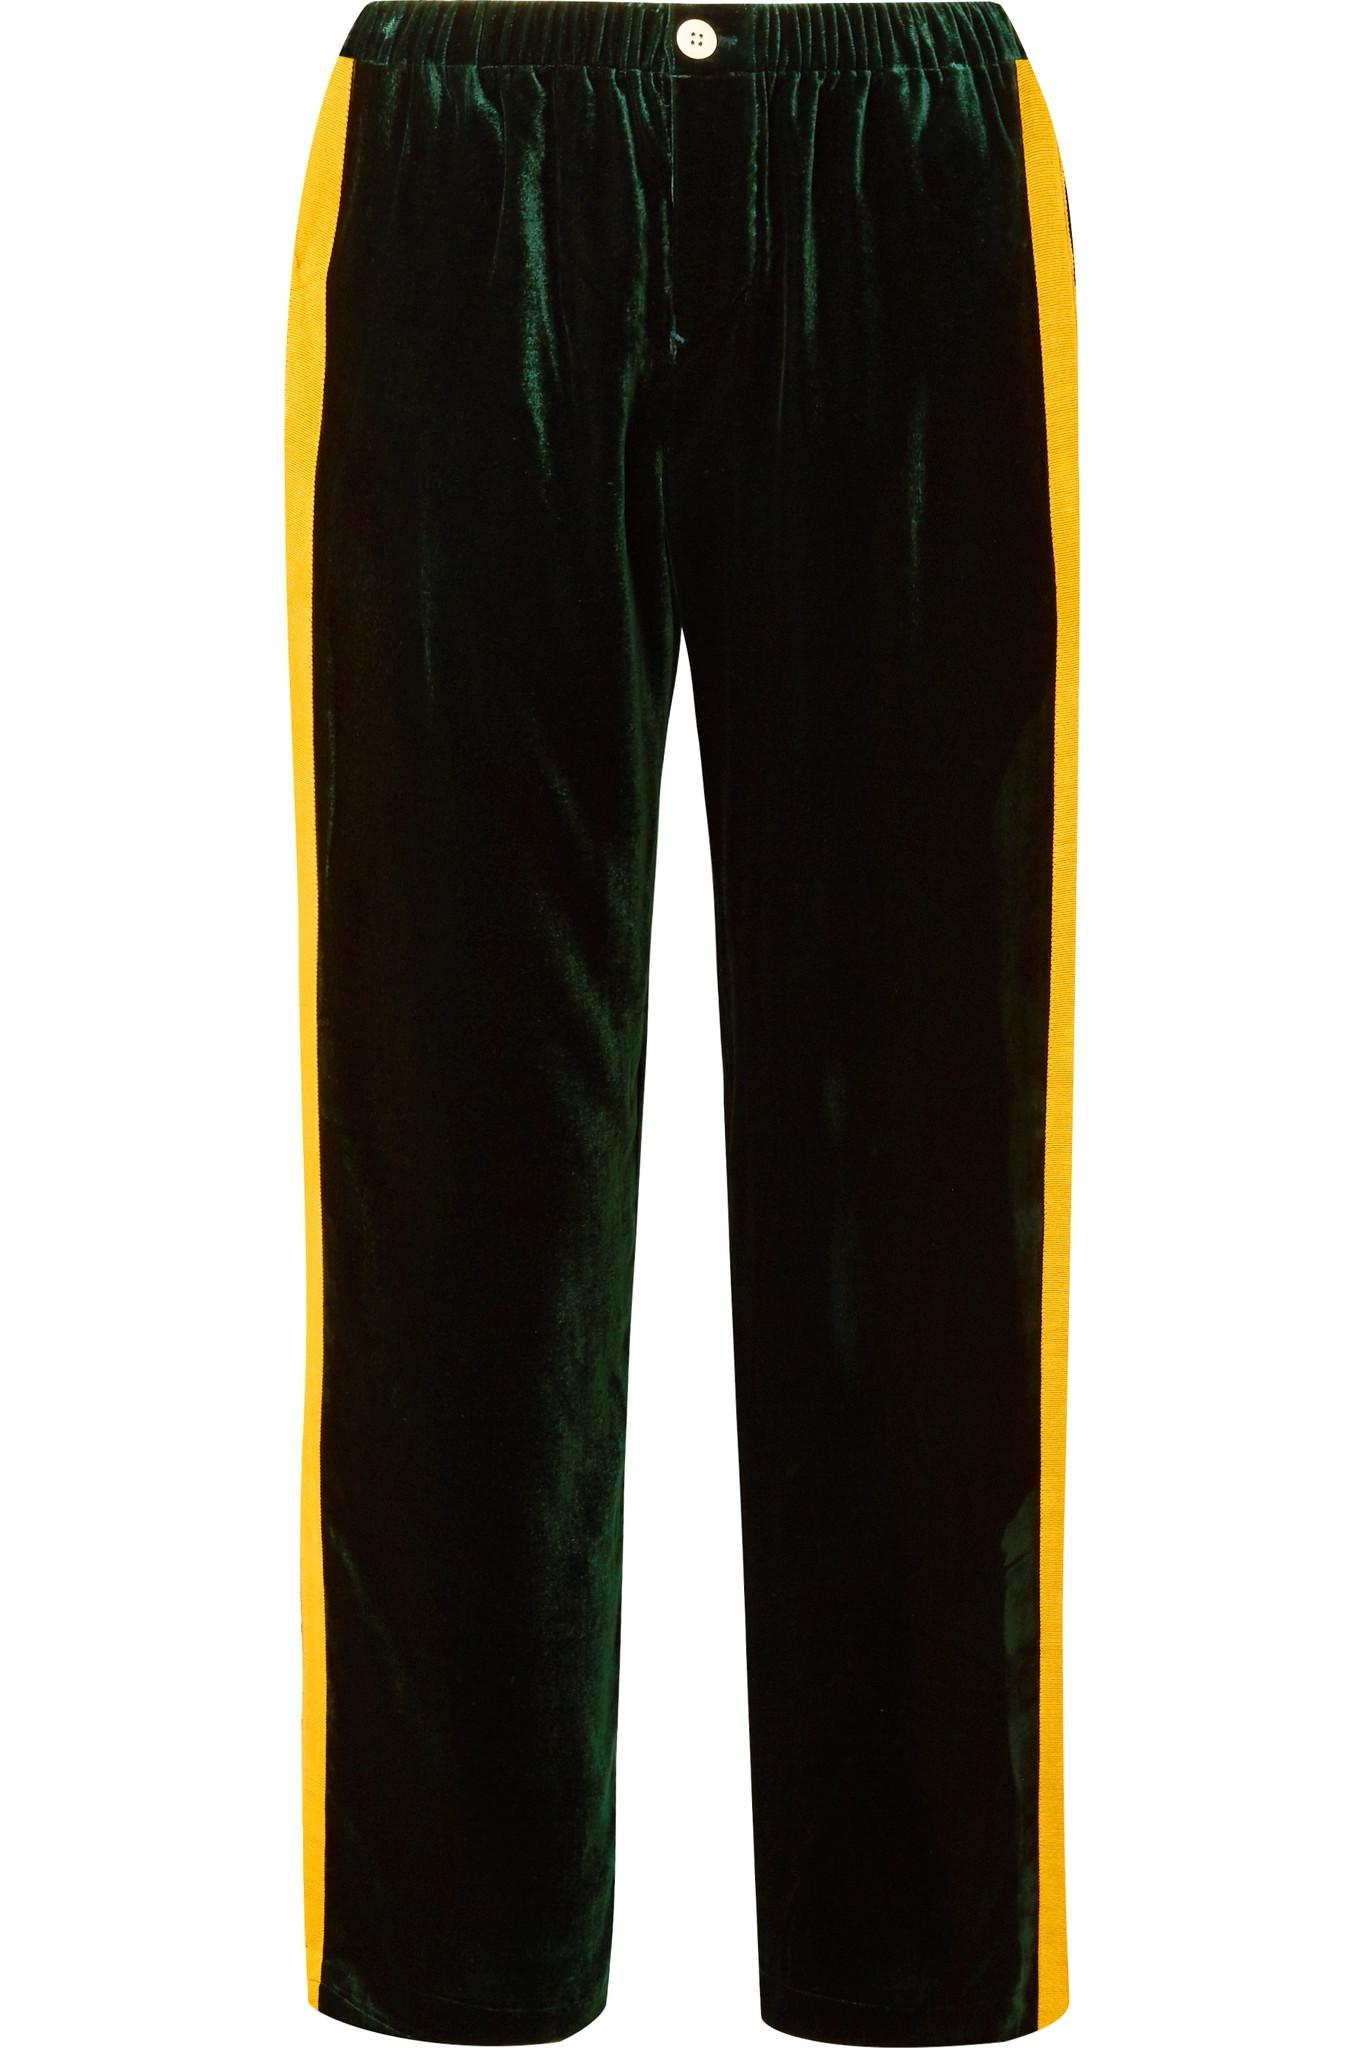 05c64eedbe58 sleepy-jones-emerald-Marina-Grosgrain-trimmed-Velvet-Pajama-Pants.jpeg